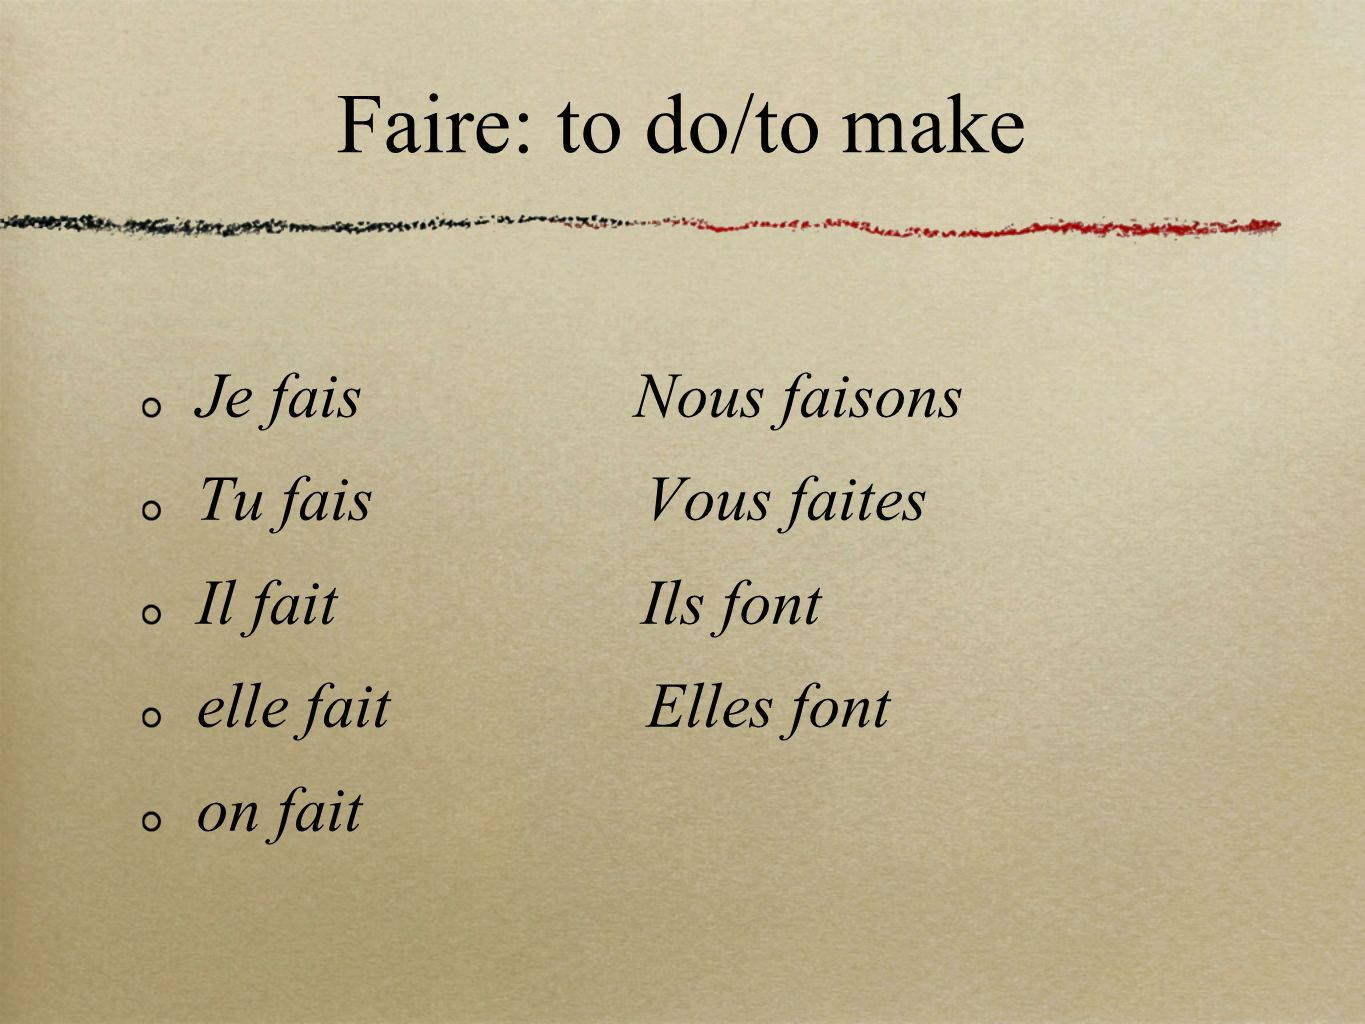 Now, lets review our newer verbs